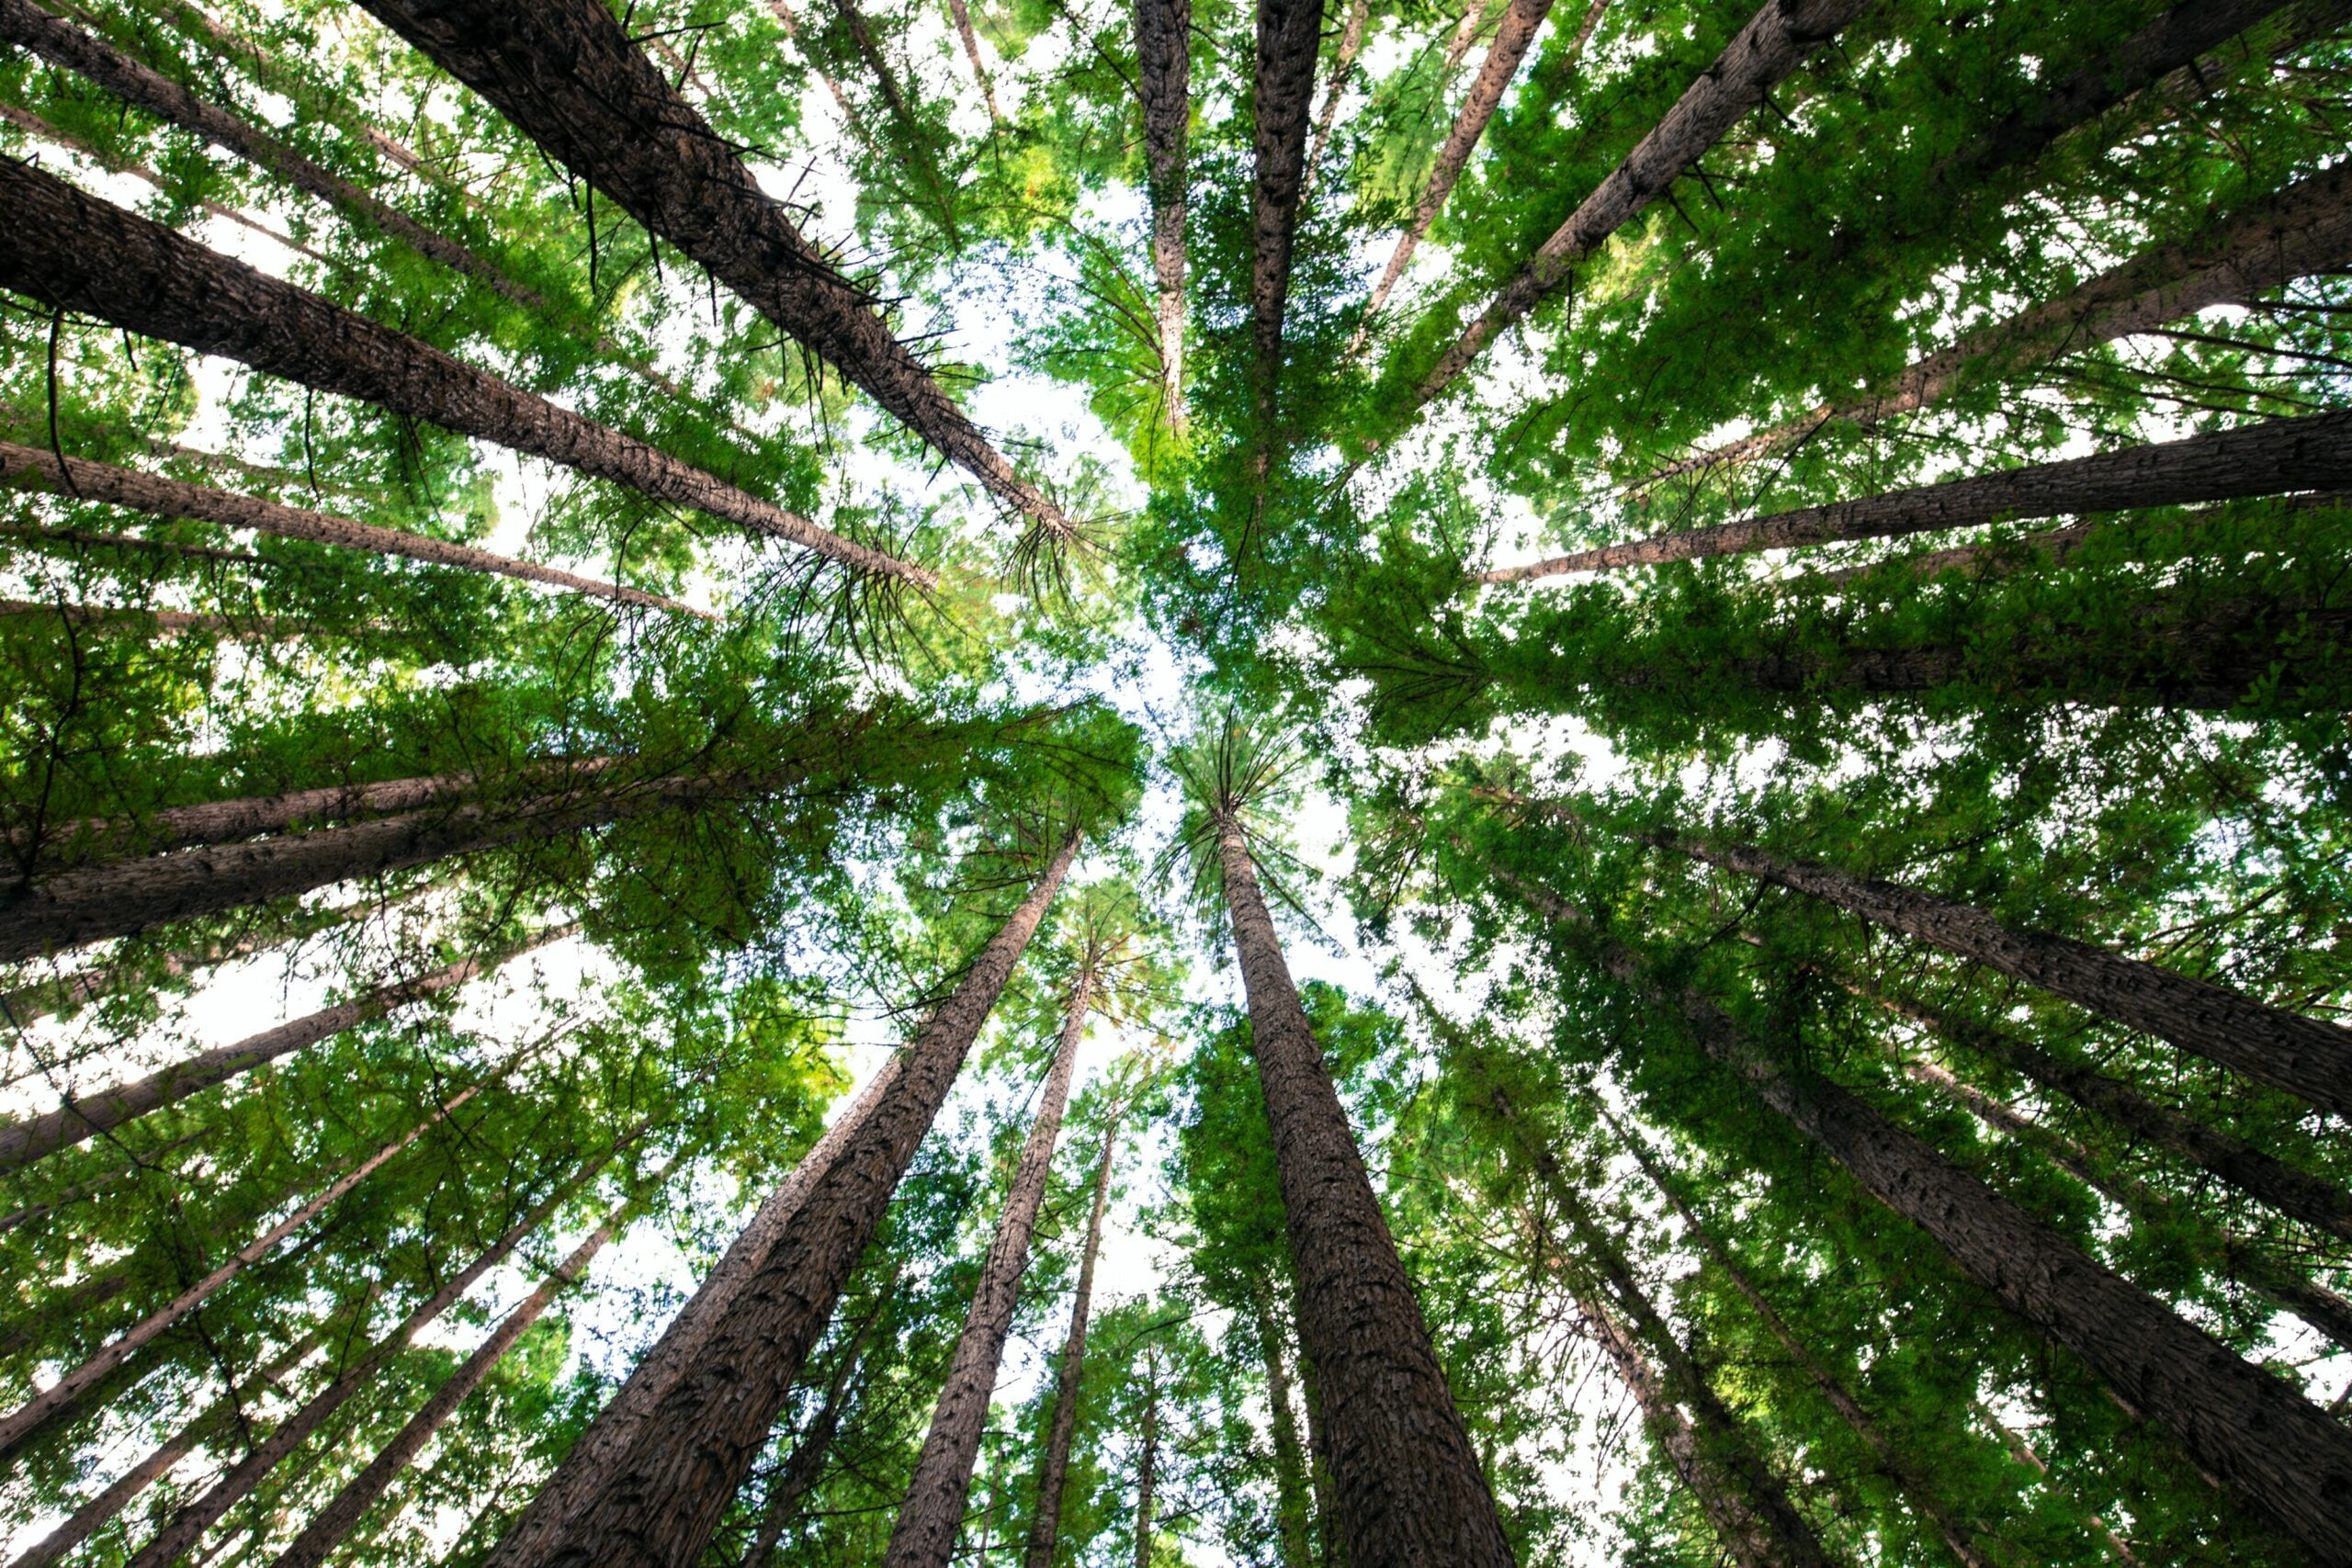 Looking up at trees in the forest